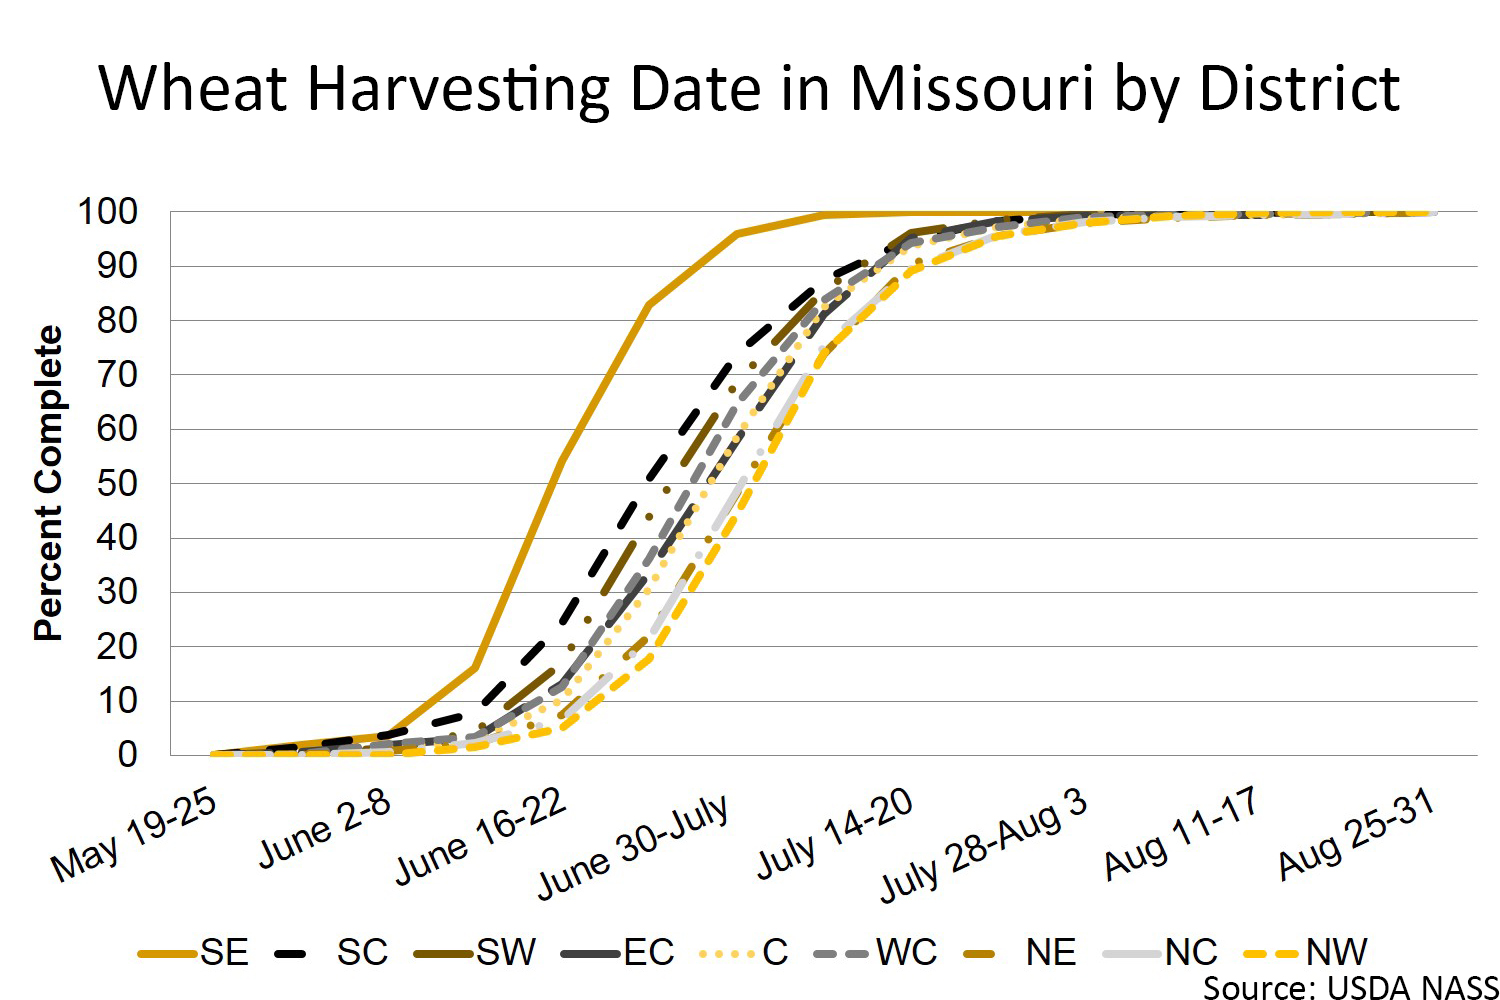 Missouri wheat harvesting date by district chart